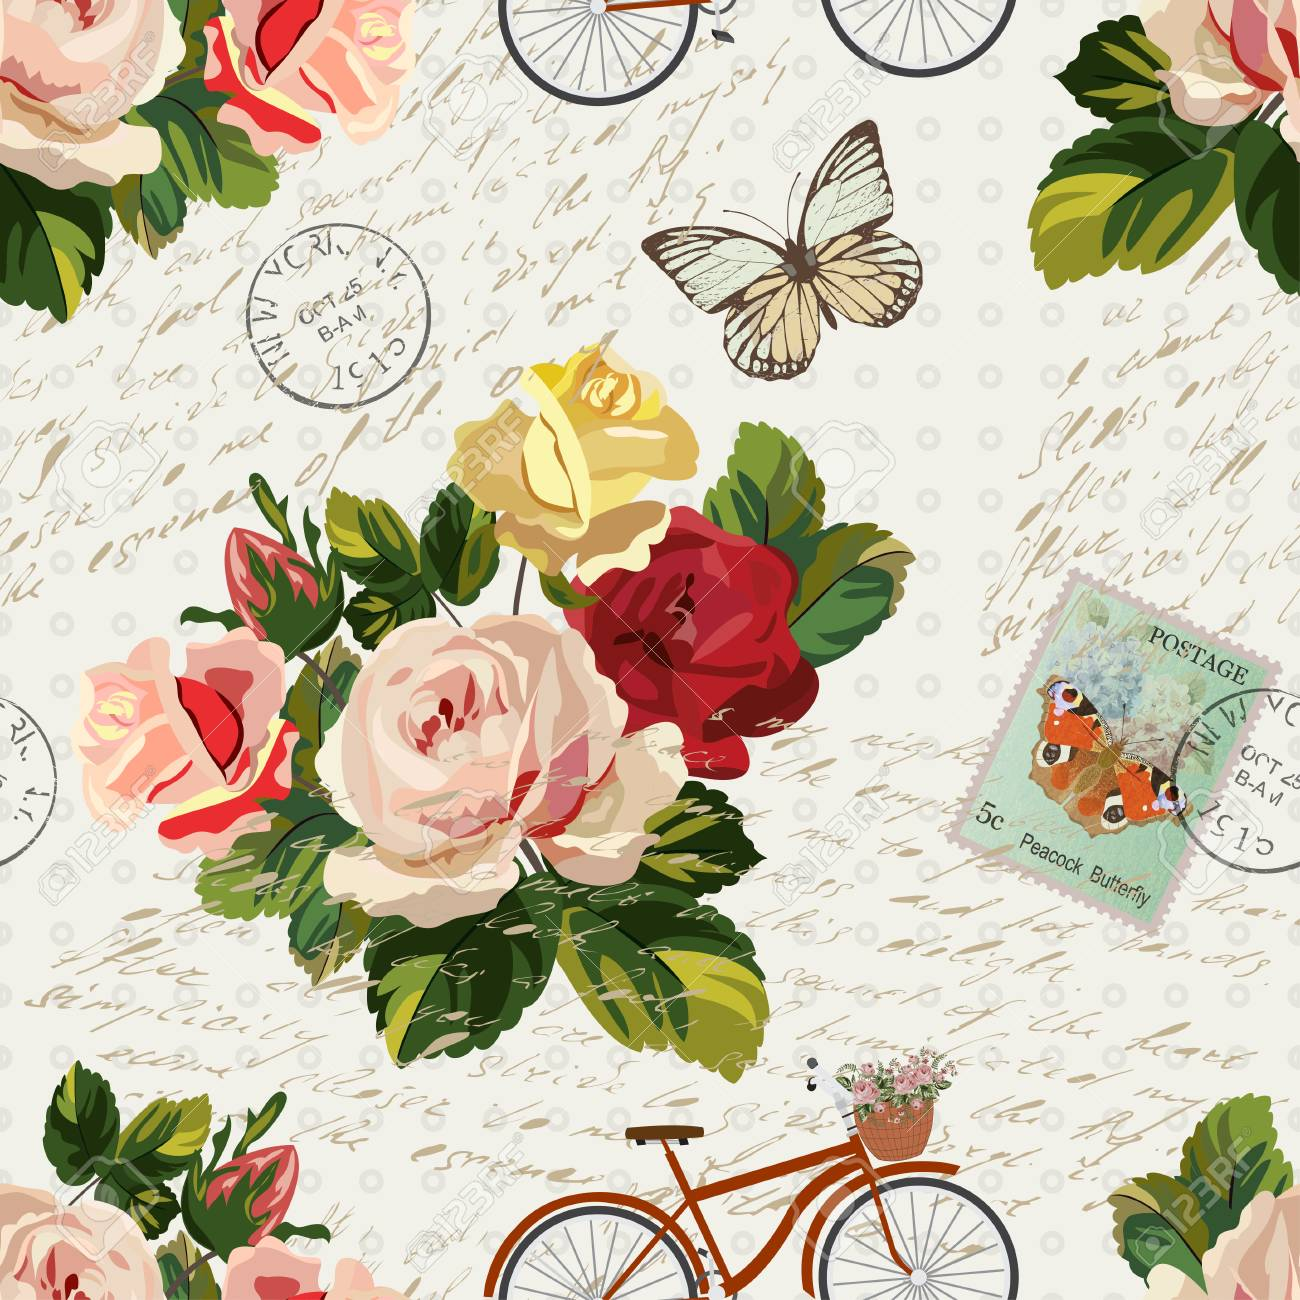 Fiori Vintage.Seamless Vintage Background With Flowers And Butterflies Royalty